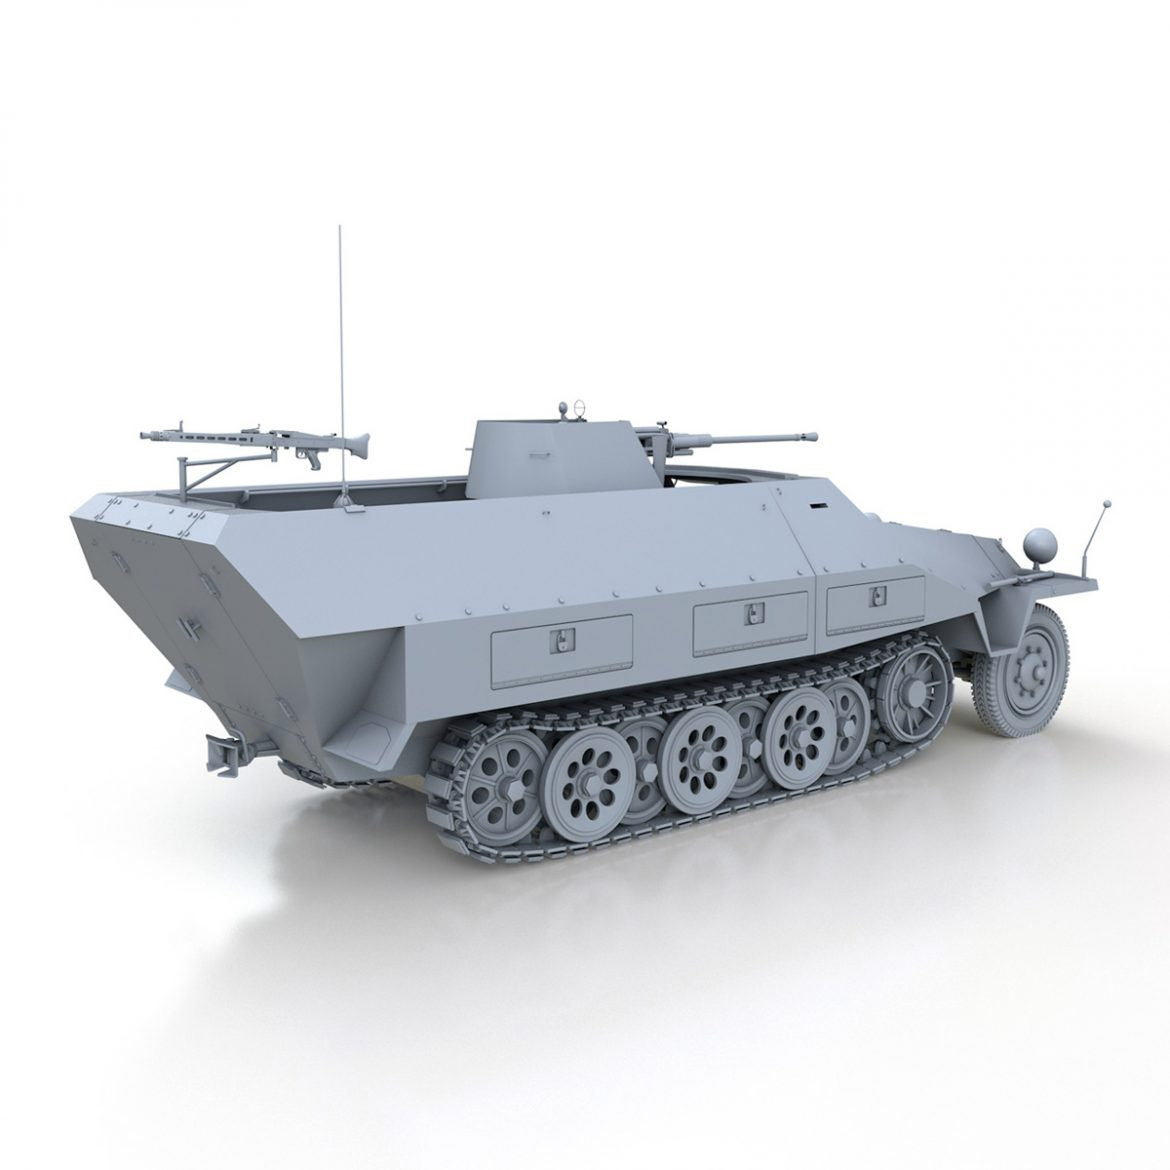 sd.kfz 251/17 ausf.d – anti-aircraft vehicle 3d model 3ds fbx c4d lwo obj 302953